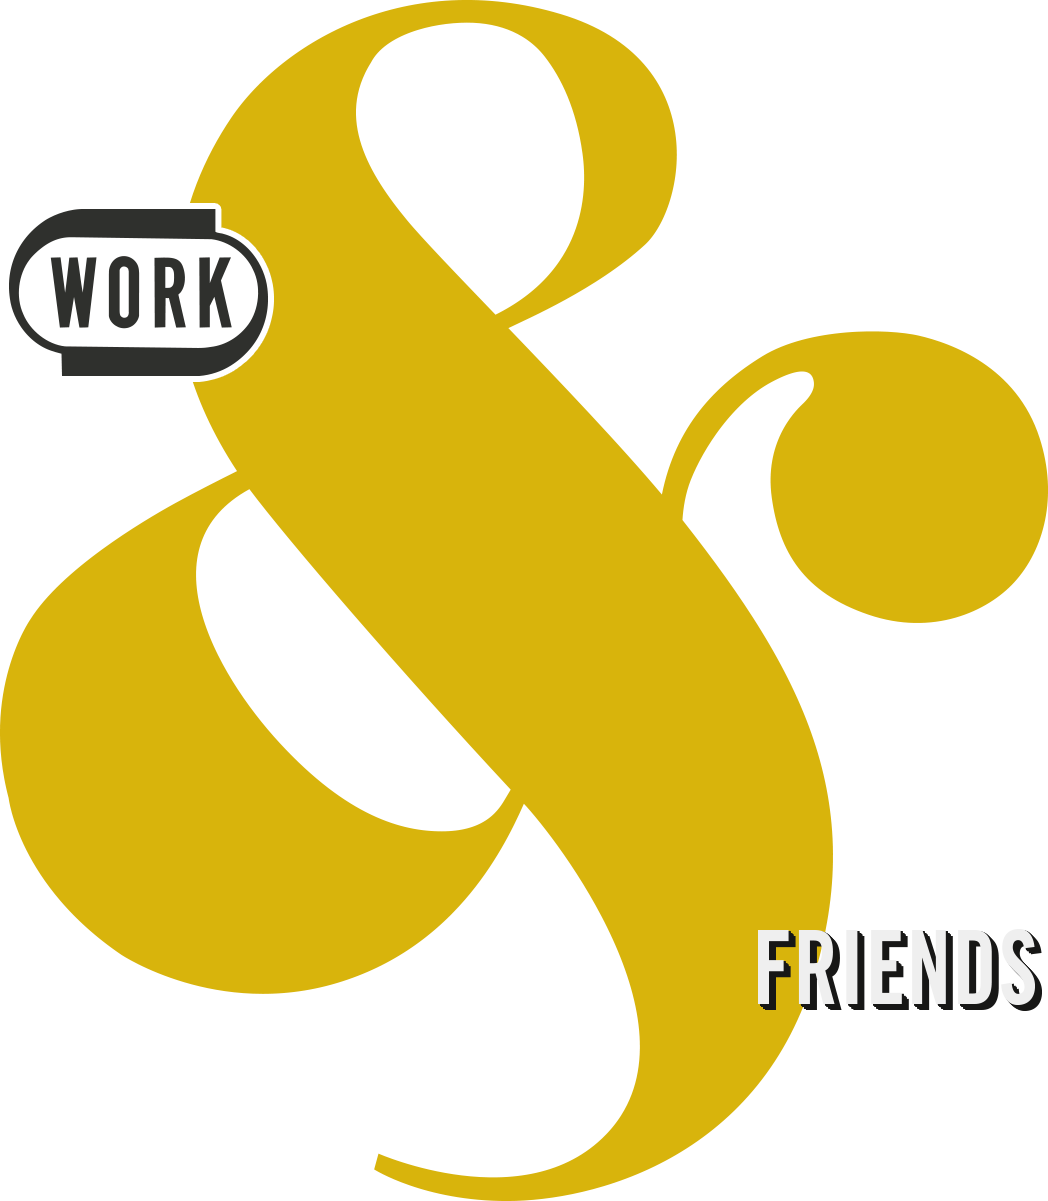 Work & Friends logo